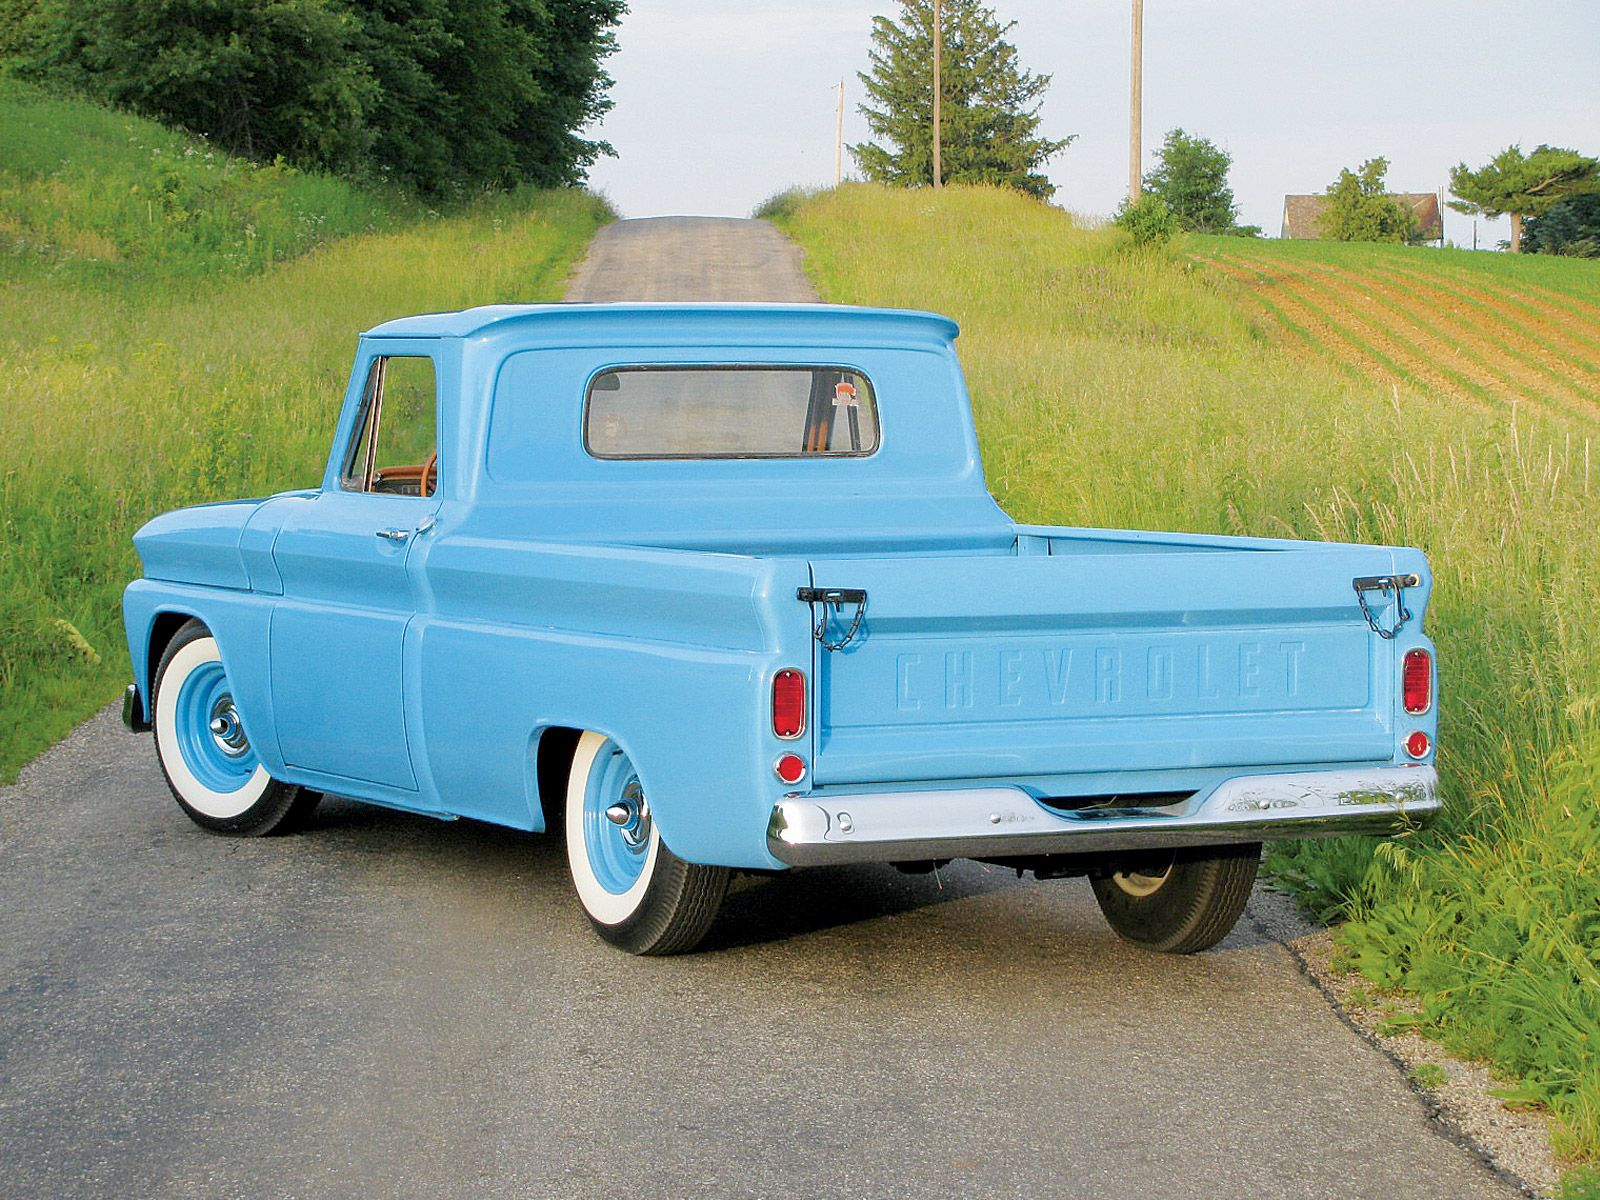 classic chevrolet truck | 1966 Chevy Pickup Truck | 60 series ...